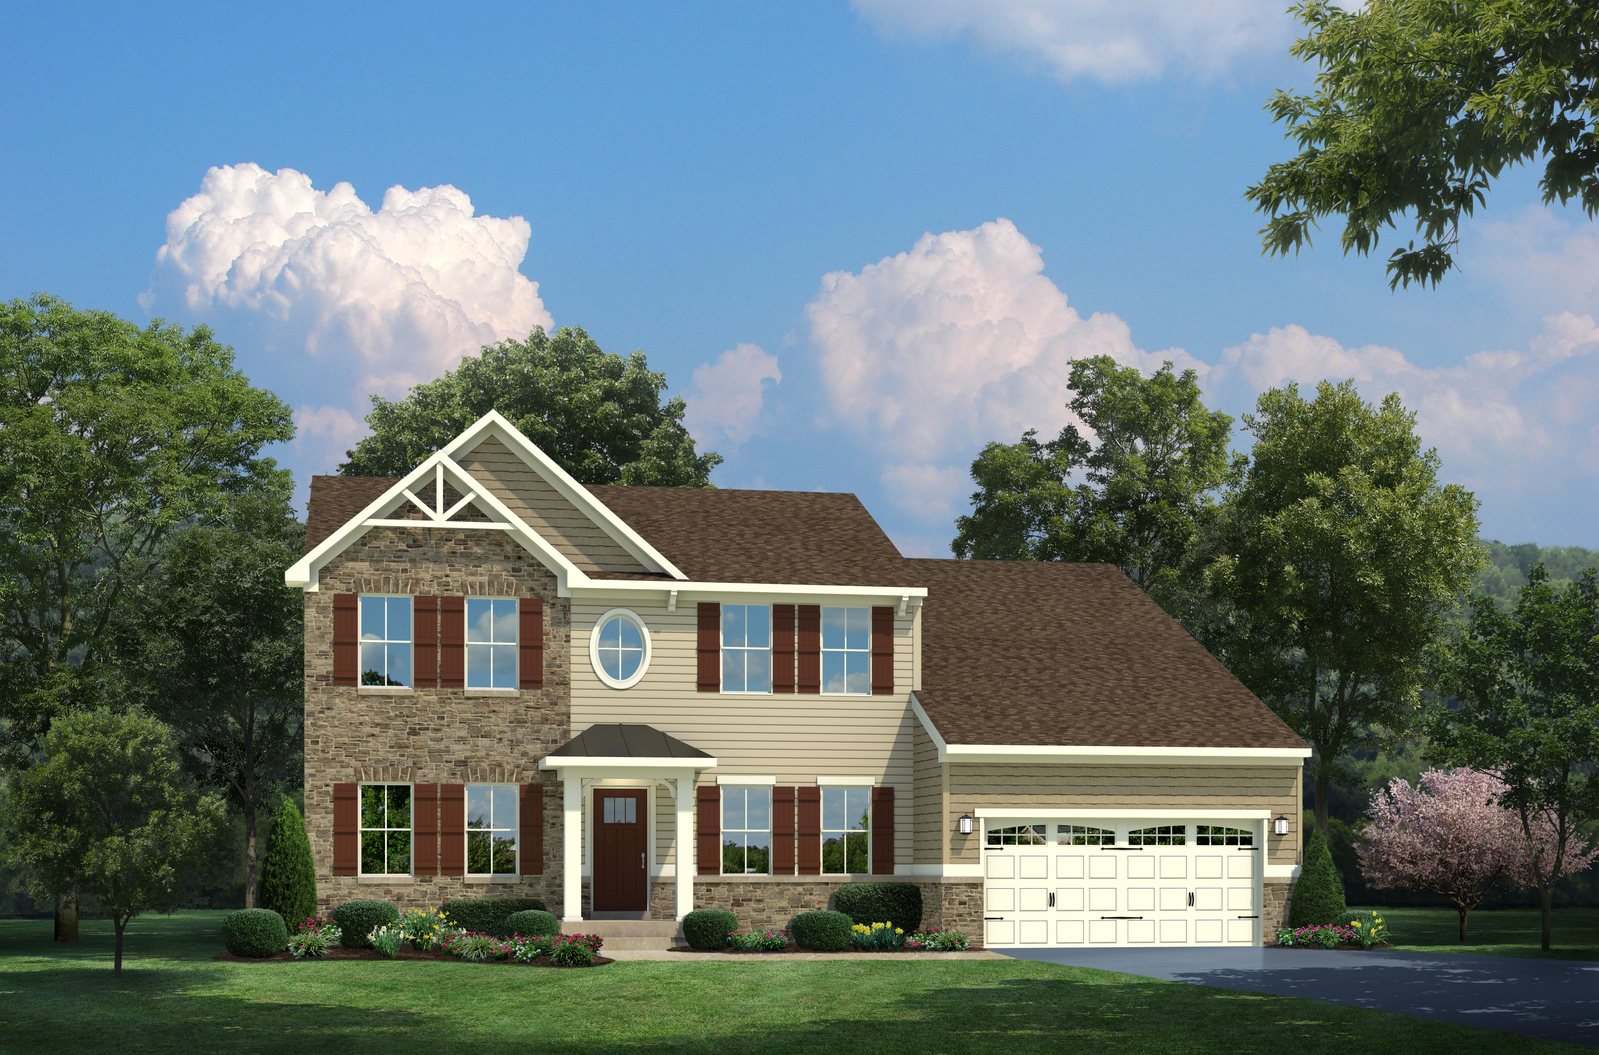 New Construction Single Family Homes For Sale Ravenna: New Construction Single-Family Homes For Sale -Verona-Ryan